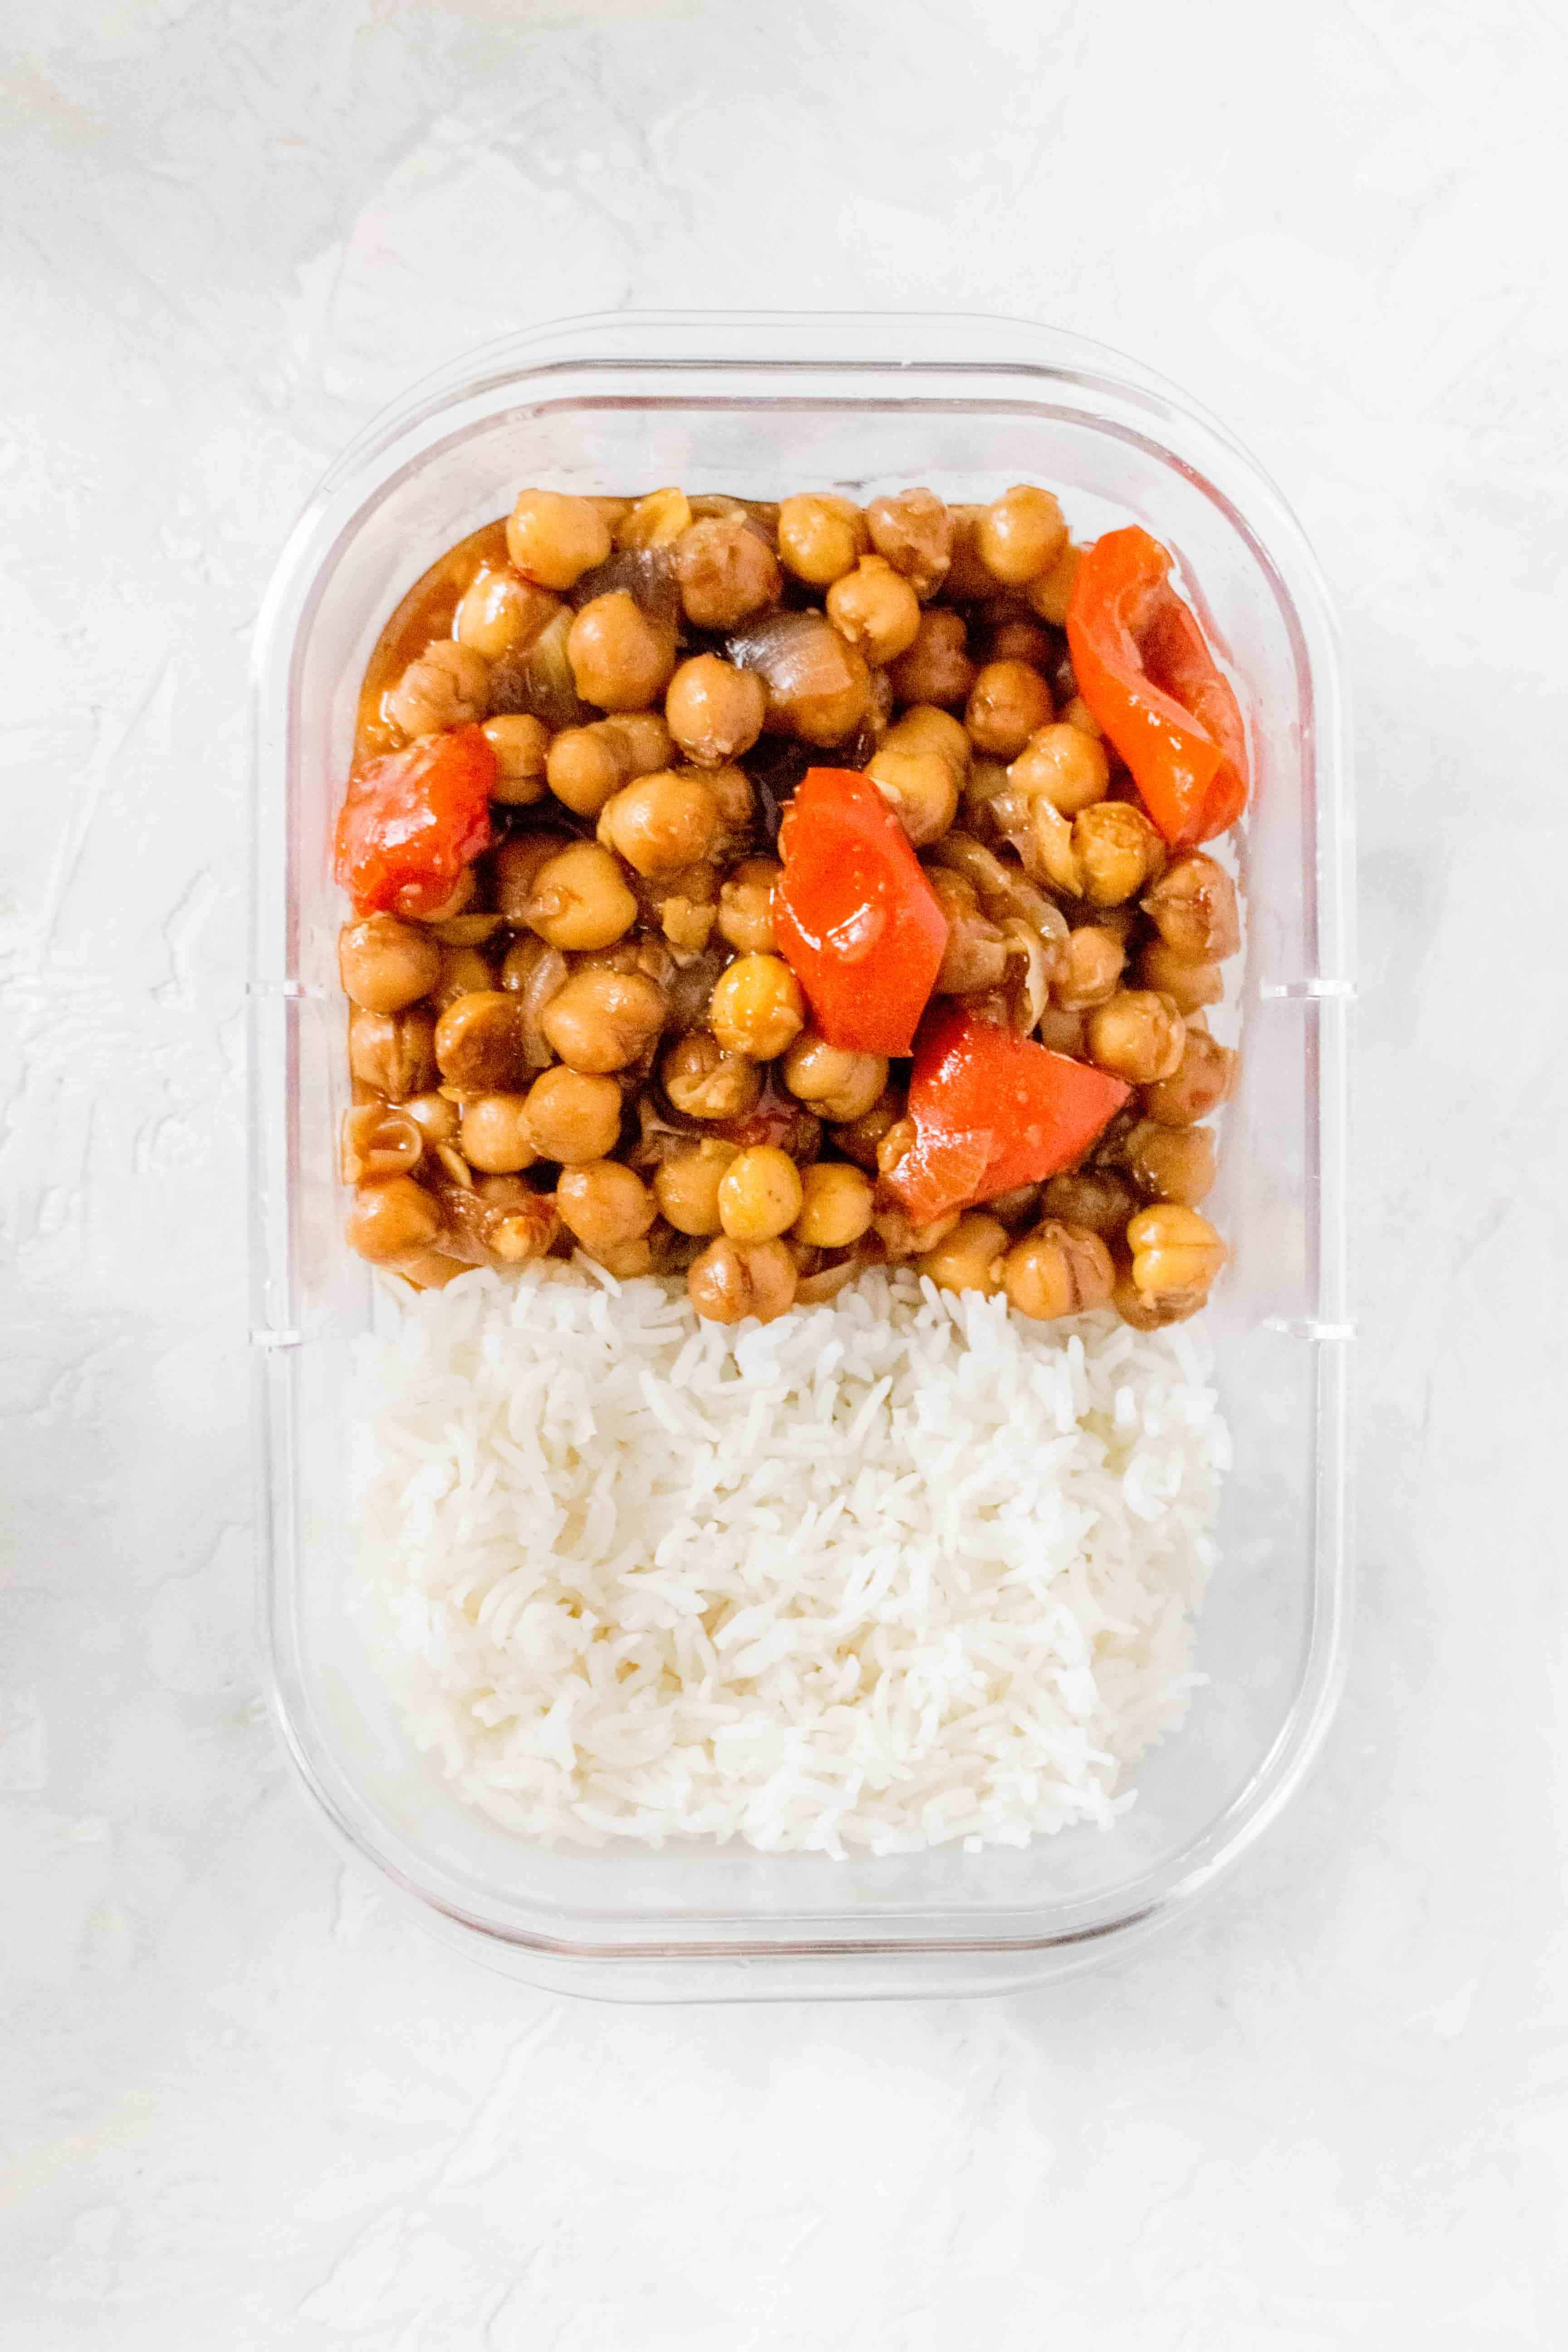 Rubbermaid Brilliance container with Instant Pot Kung Pao Chickpeas with rice stored inside.